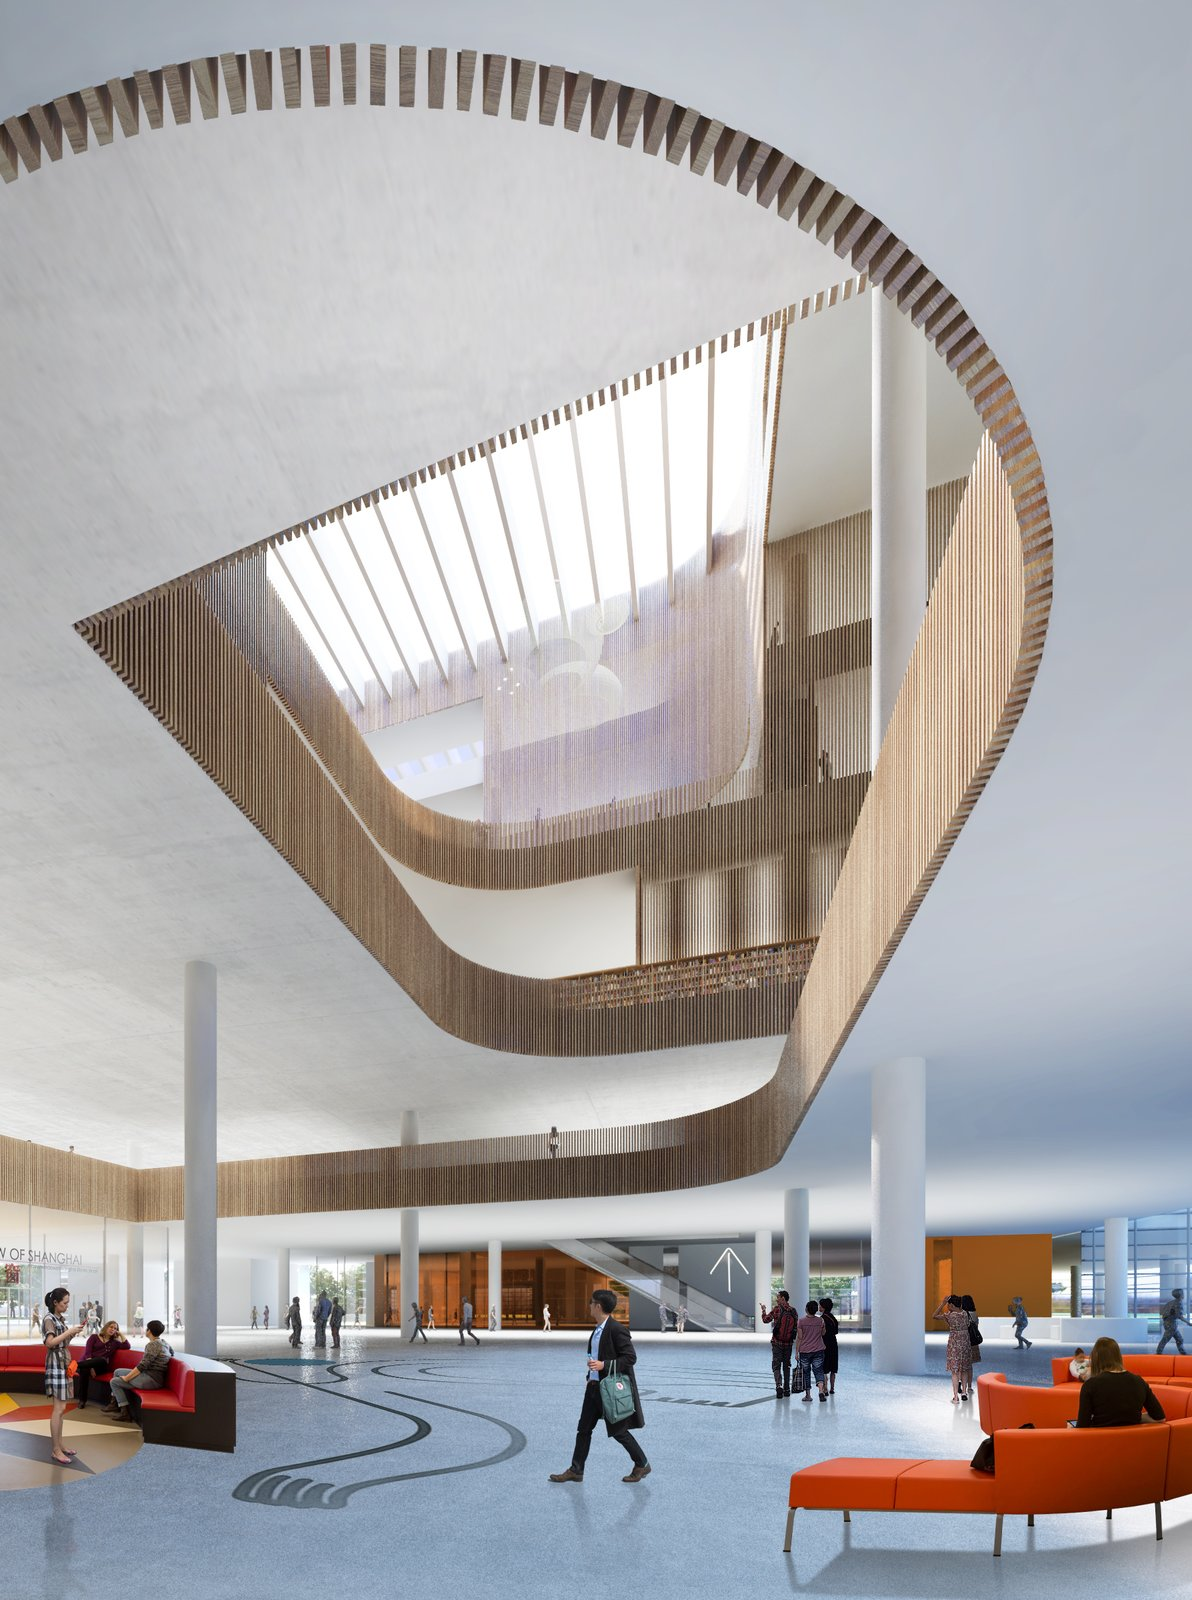 Photo 7 of 8 in Schmidt Hammer Lassen Architects' Winning Design For the Shanghai Library